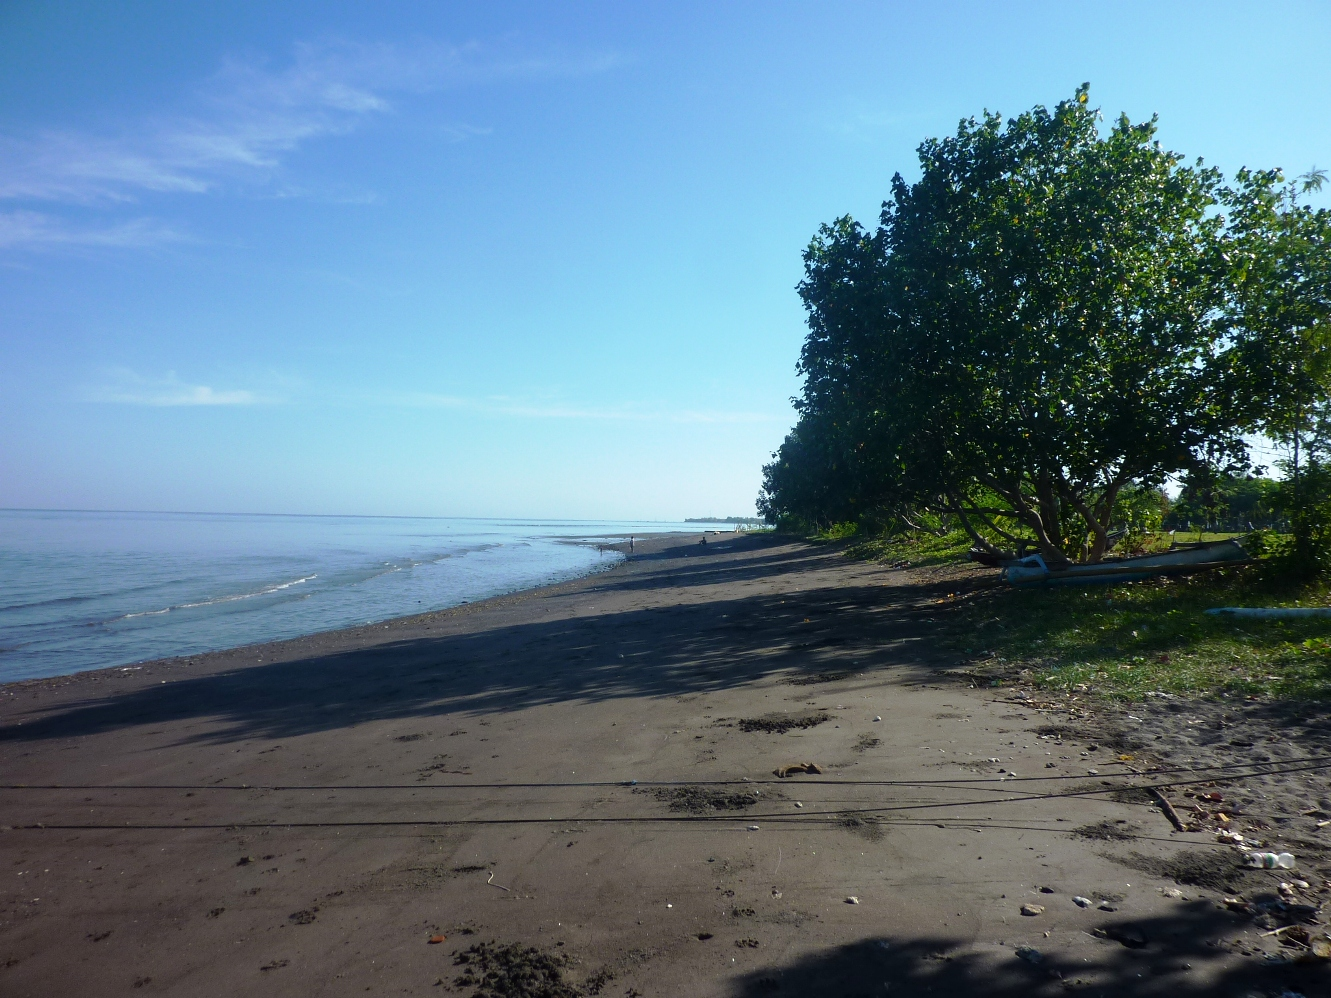 The beach just east of the fishing village. Only 5 - 8 minute walk.